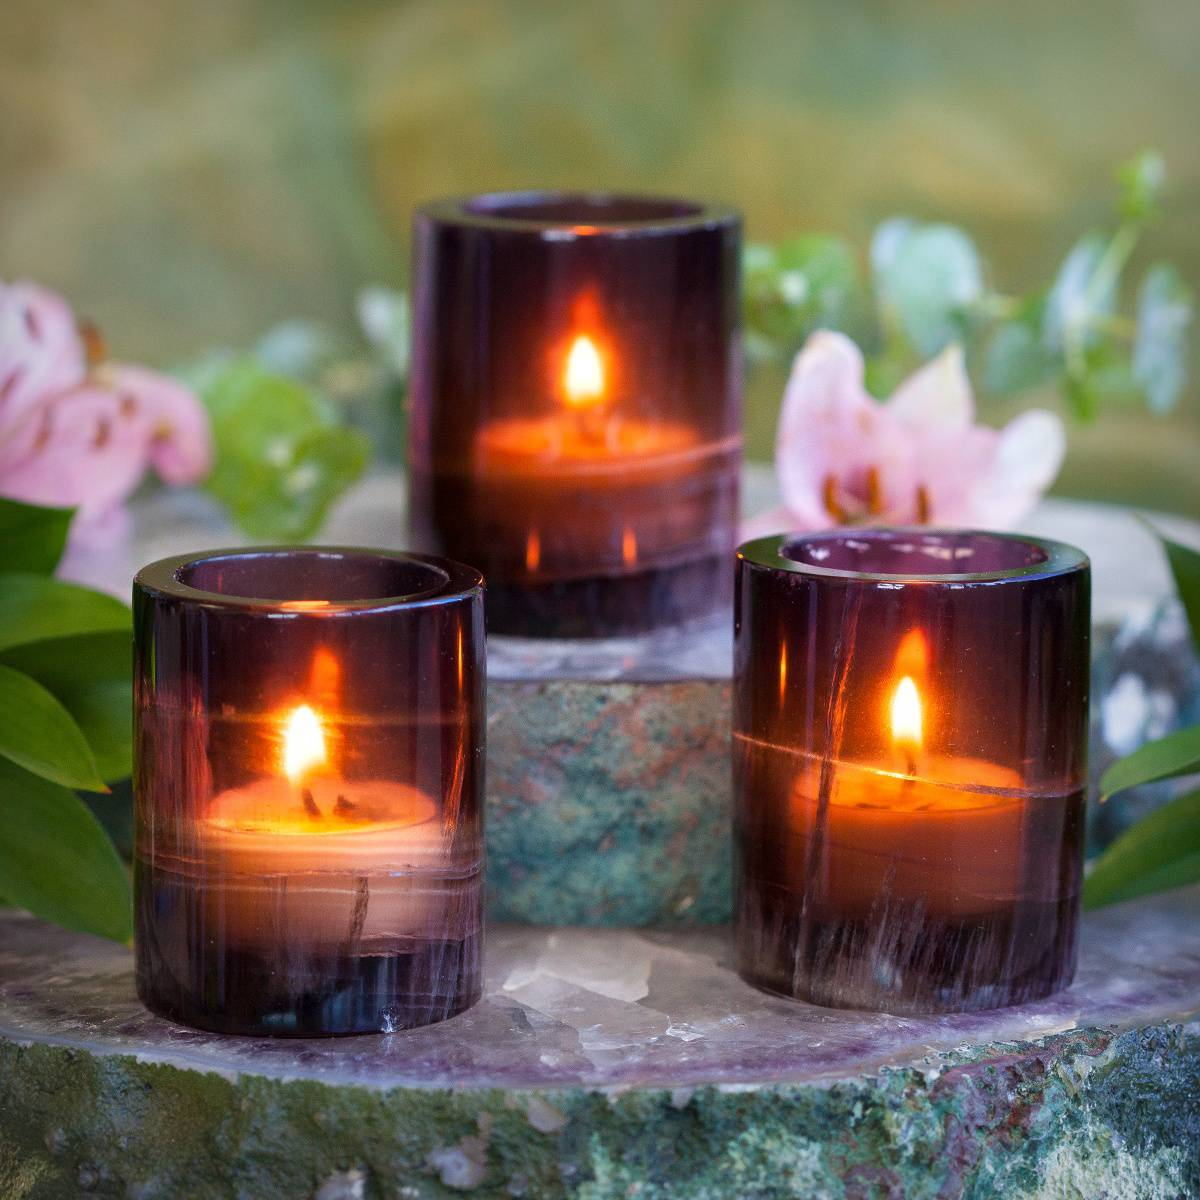 Purple Fluorite Tea Light Holders For Peace Deepened Intuition And Spirit Realm Connection